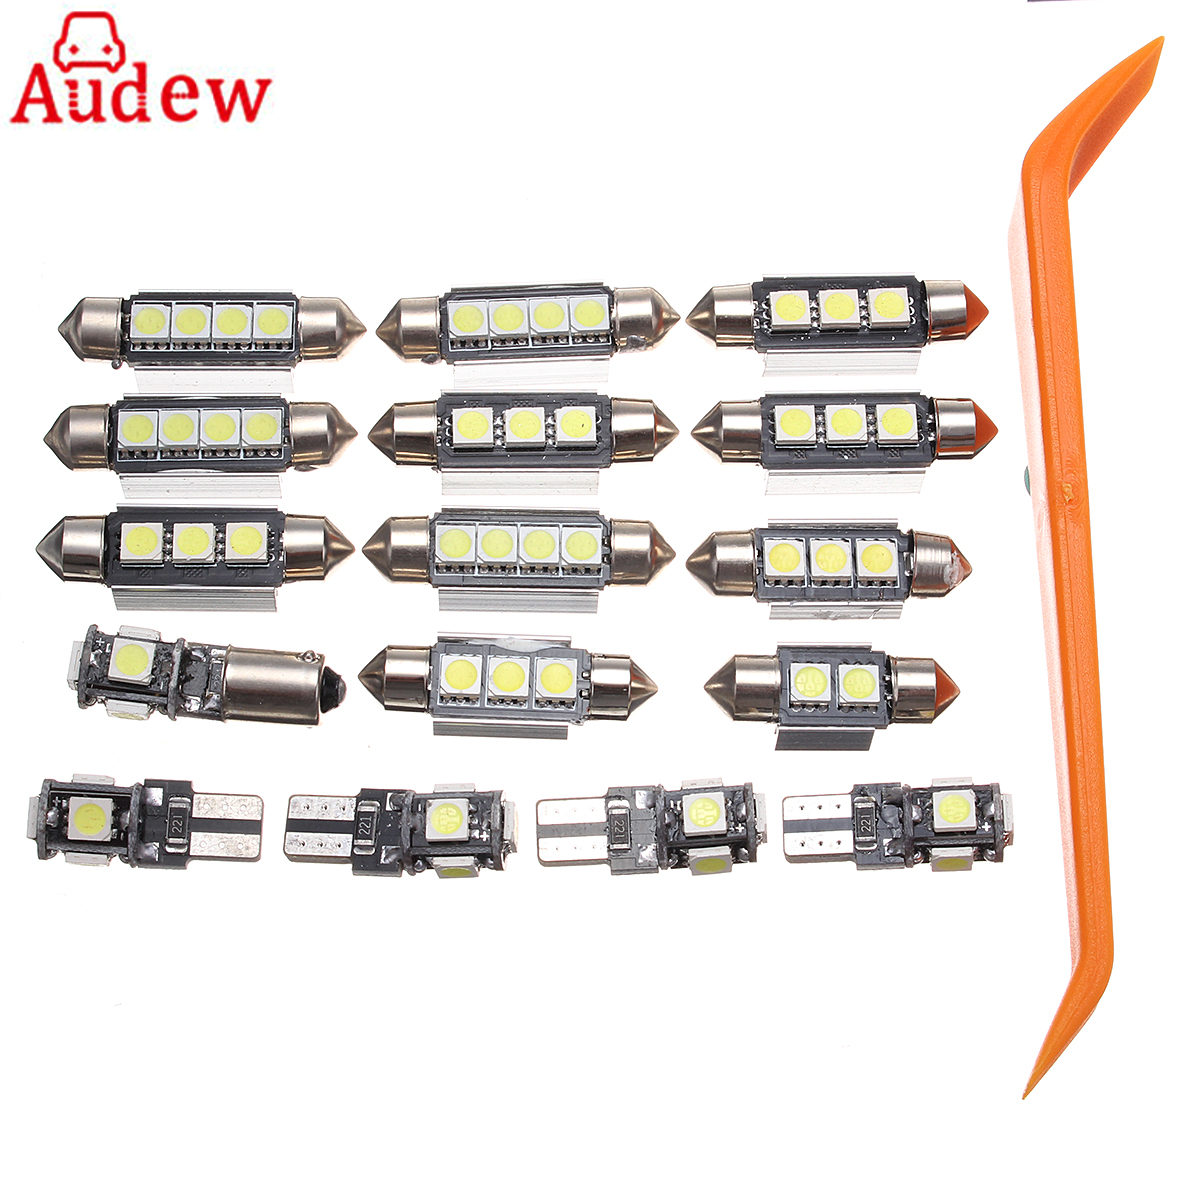 18pcs Car Interior LED Light Kit White Lamp DC 12V Reading Light for 2003-2011 Volvo XC90 cawanerl car canbus led package kit 2835 smd white interior dome map cargo license plate light for audi tt tts 8j 2007 2012